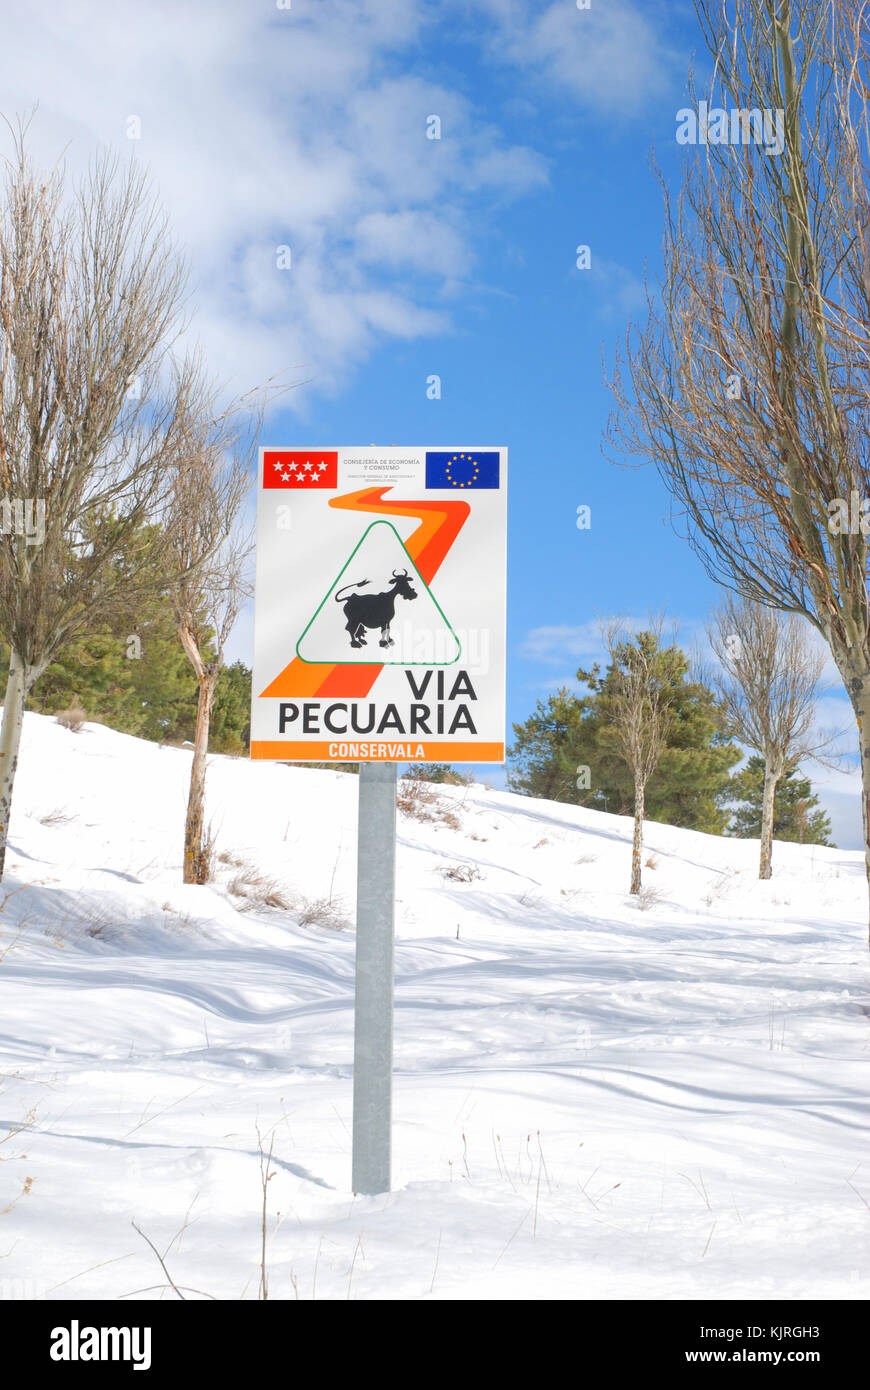 Via Pecuaria signpost. Bustarviejo, Madrid province, Spain. Stock Photo